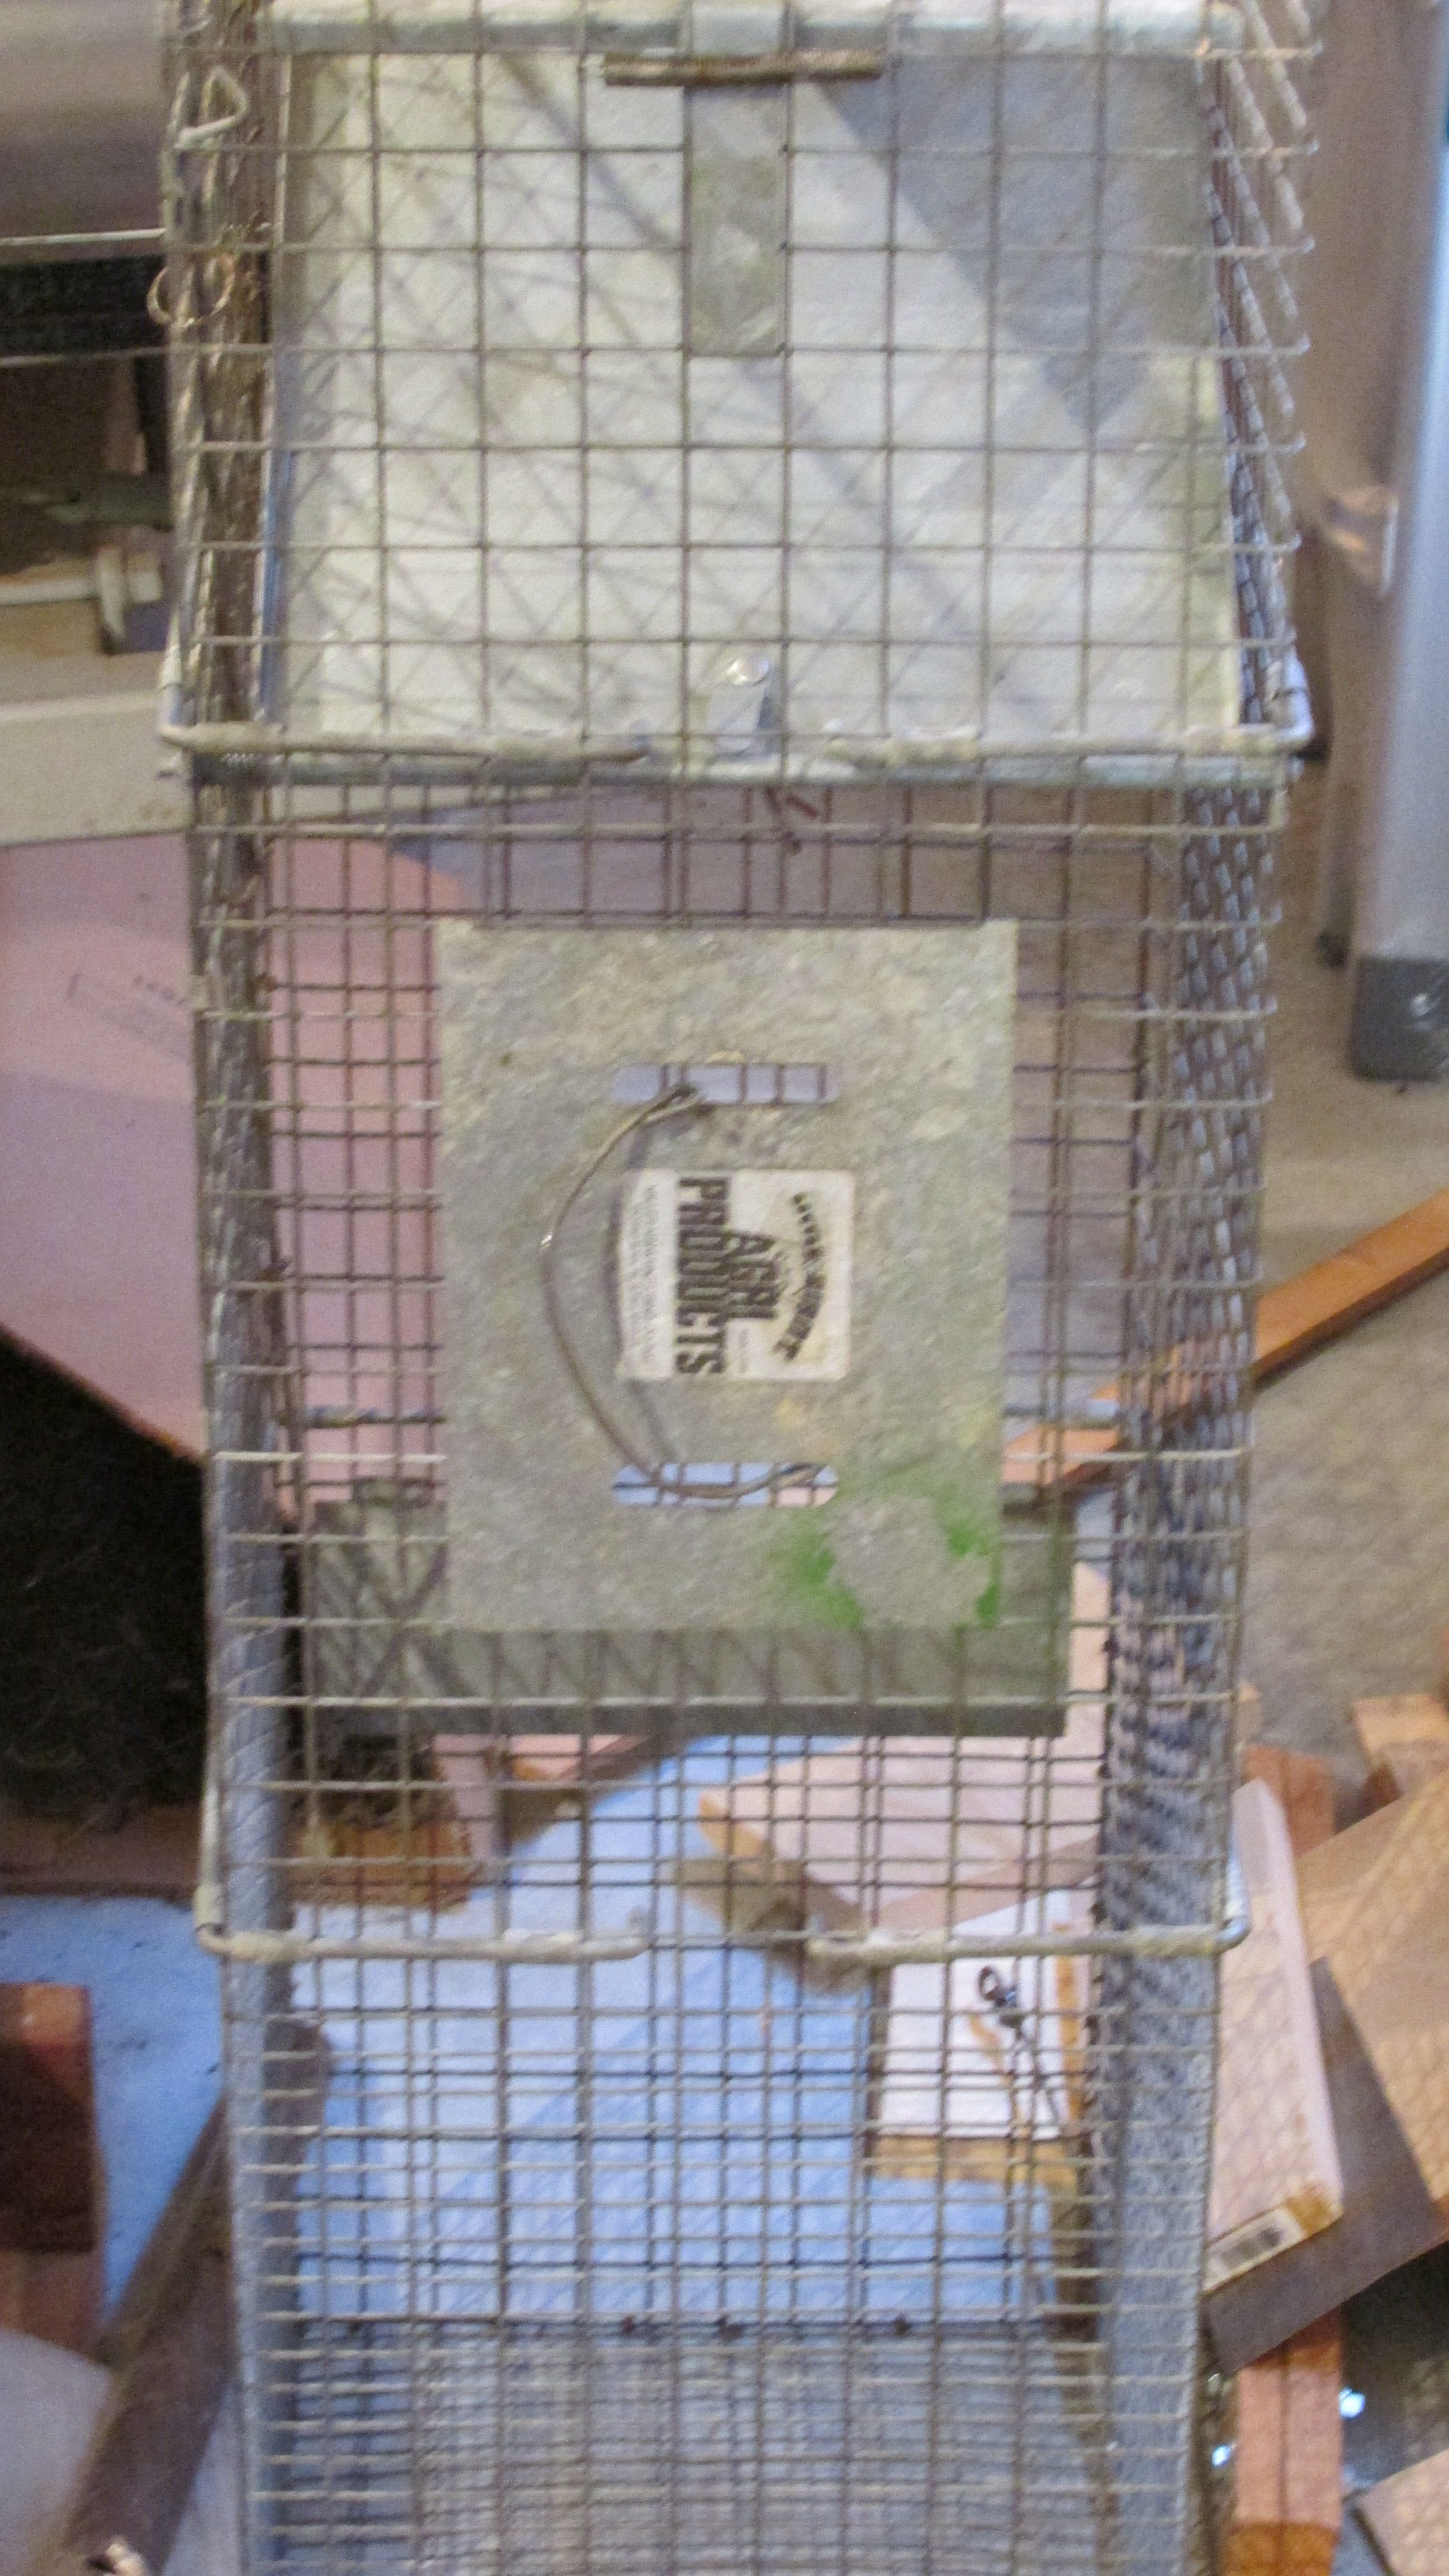 One of two Live Traps